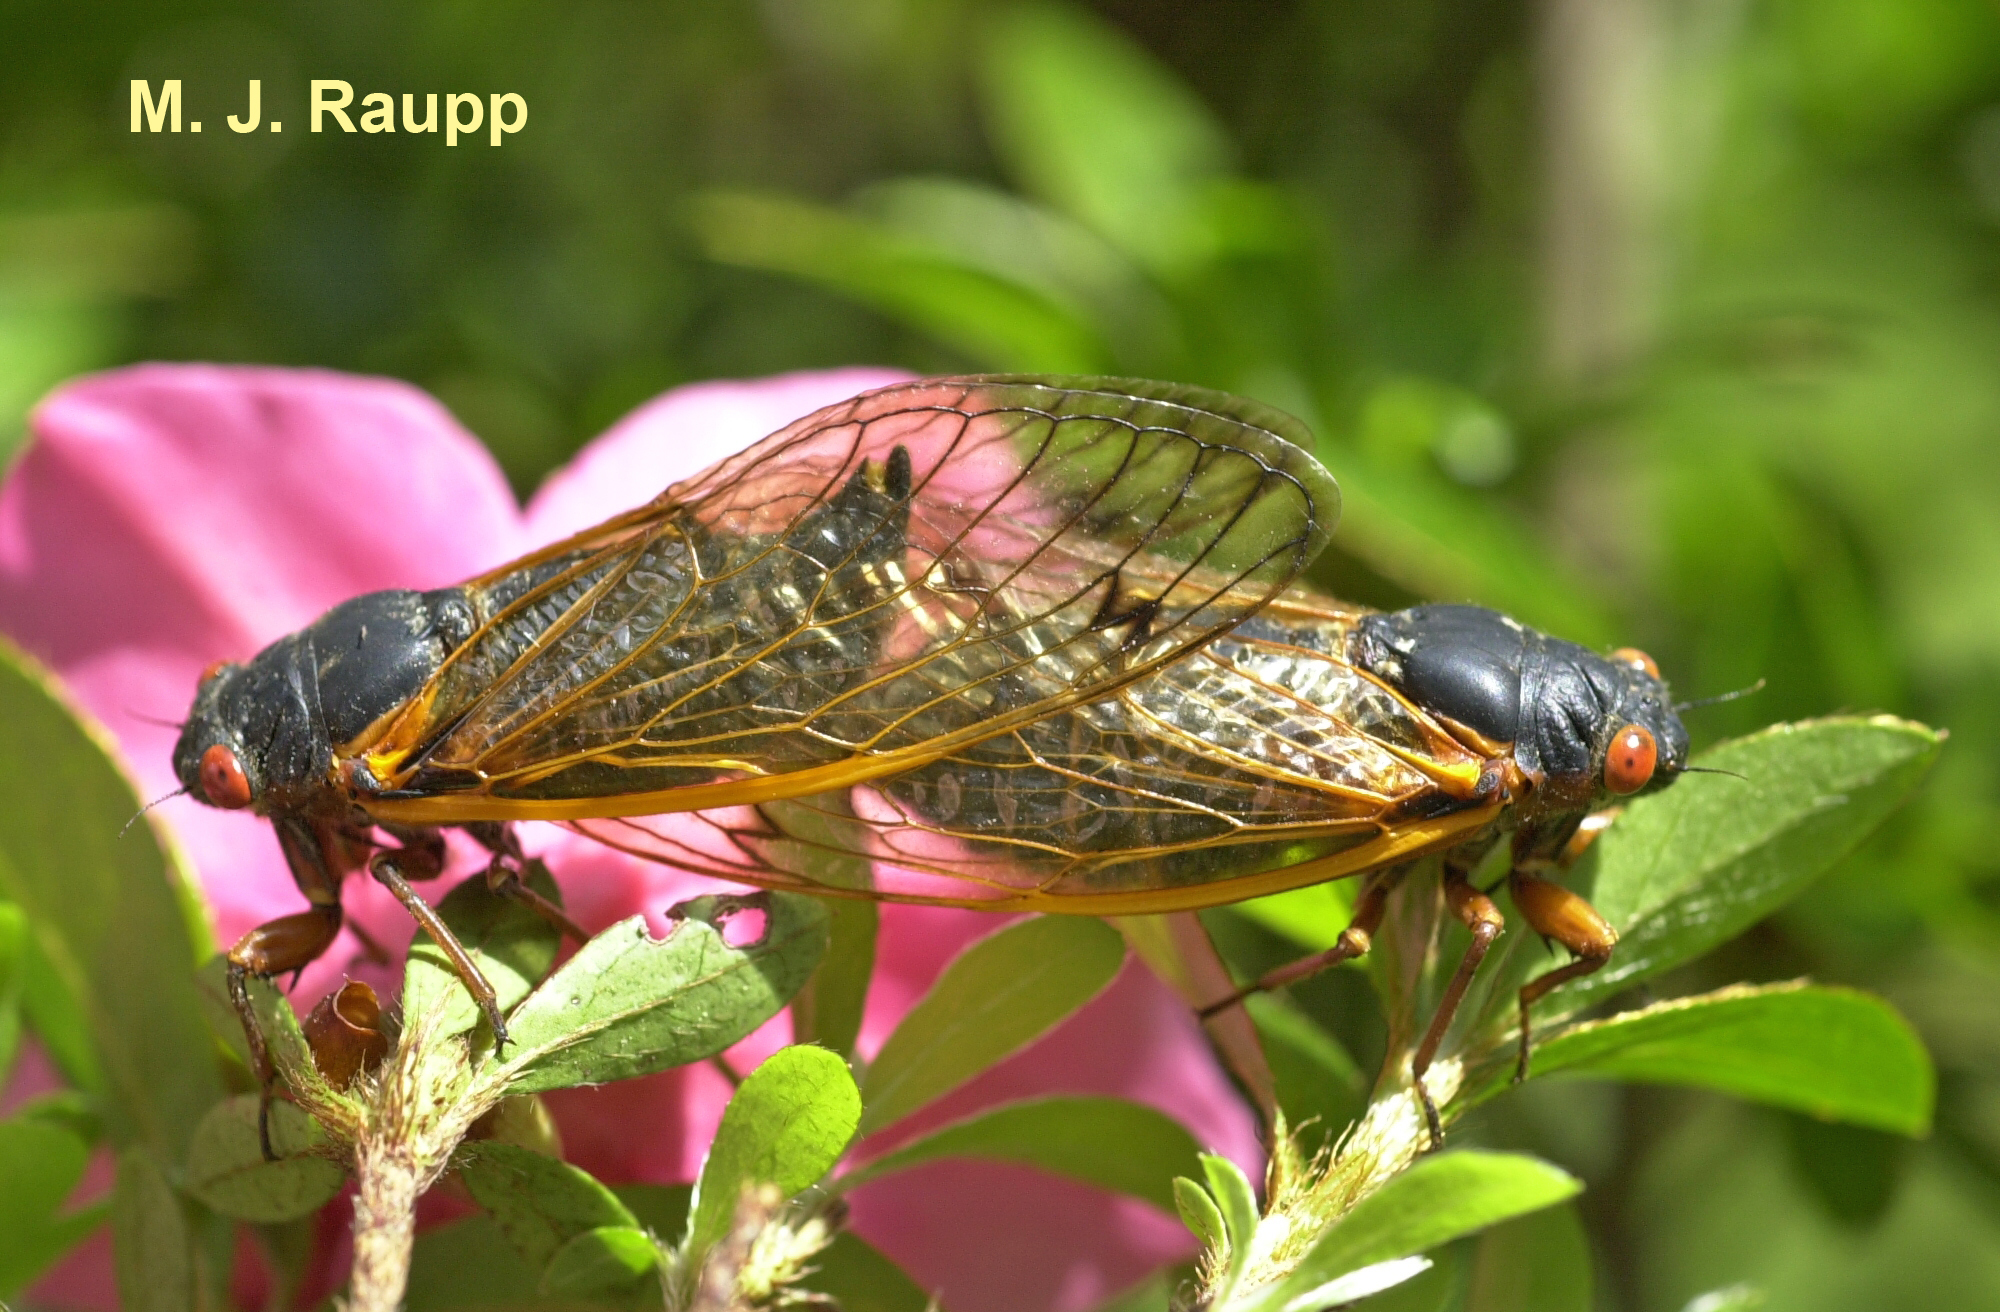 Mating cicadas often stay coupled for an hour or more.